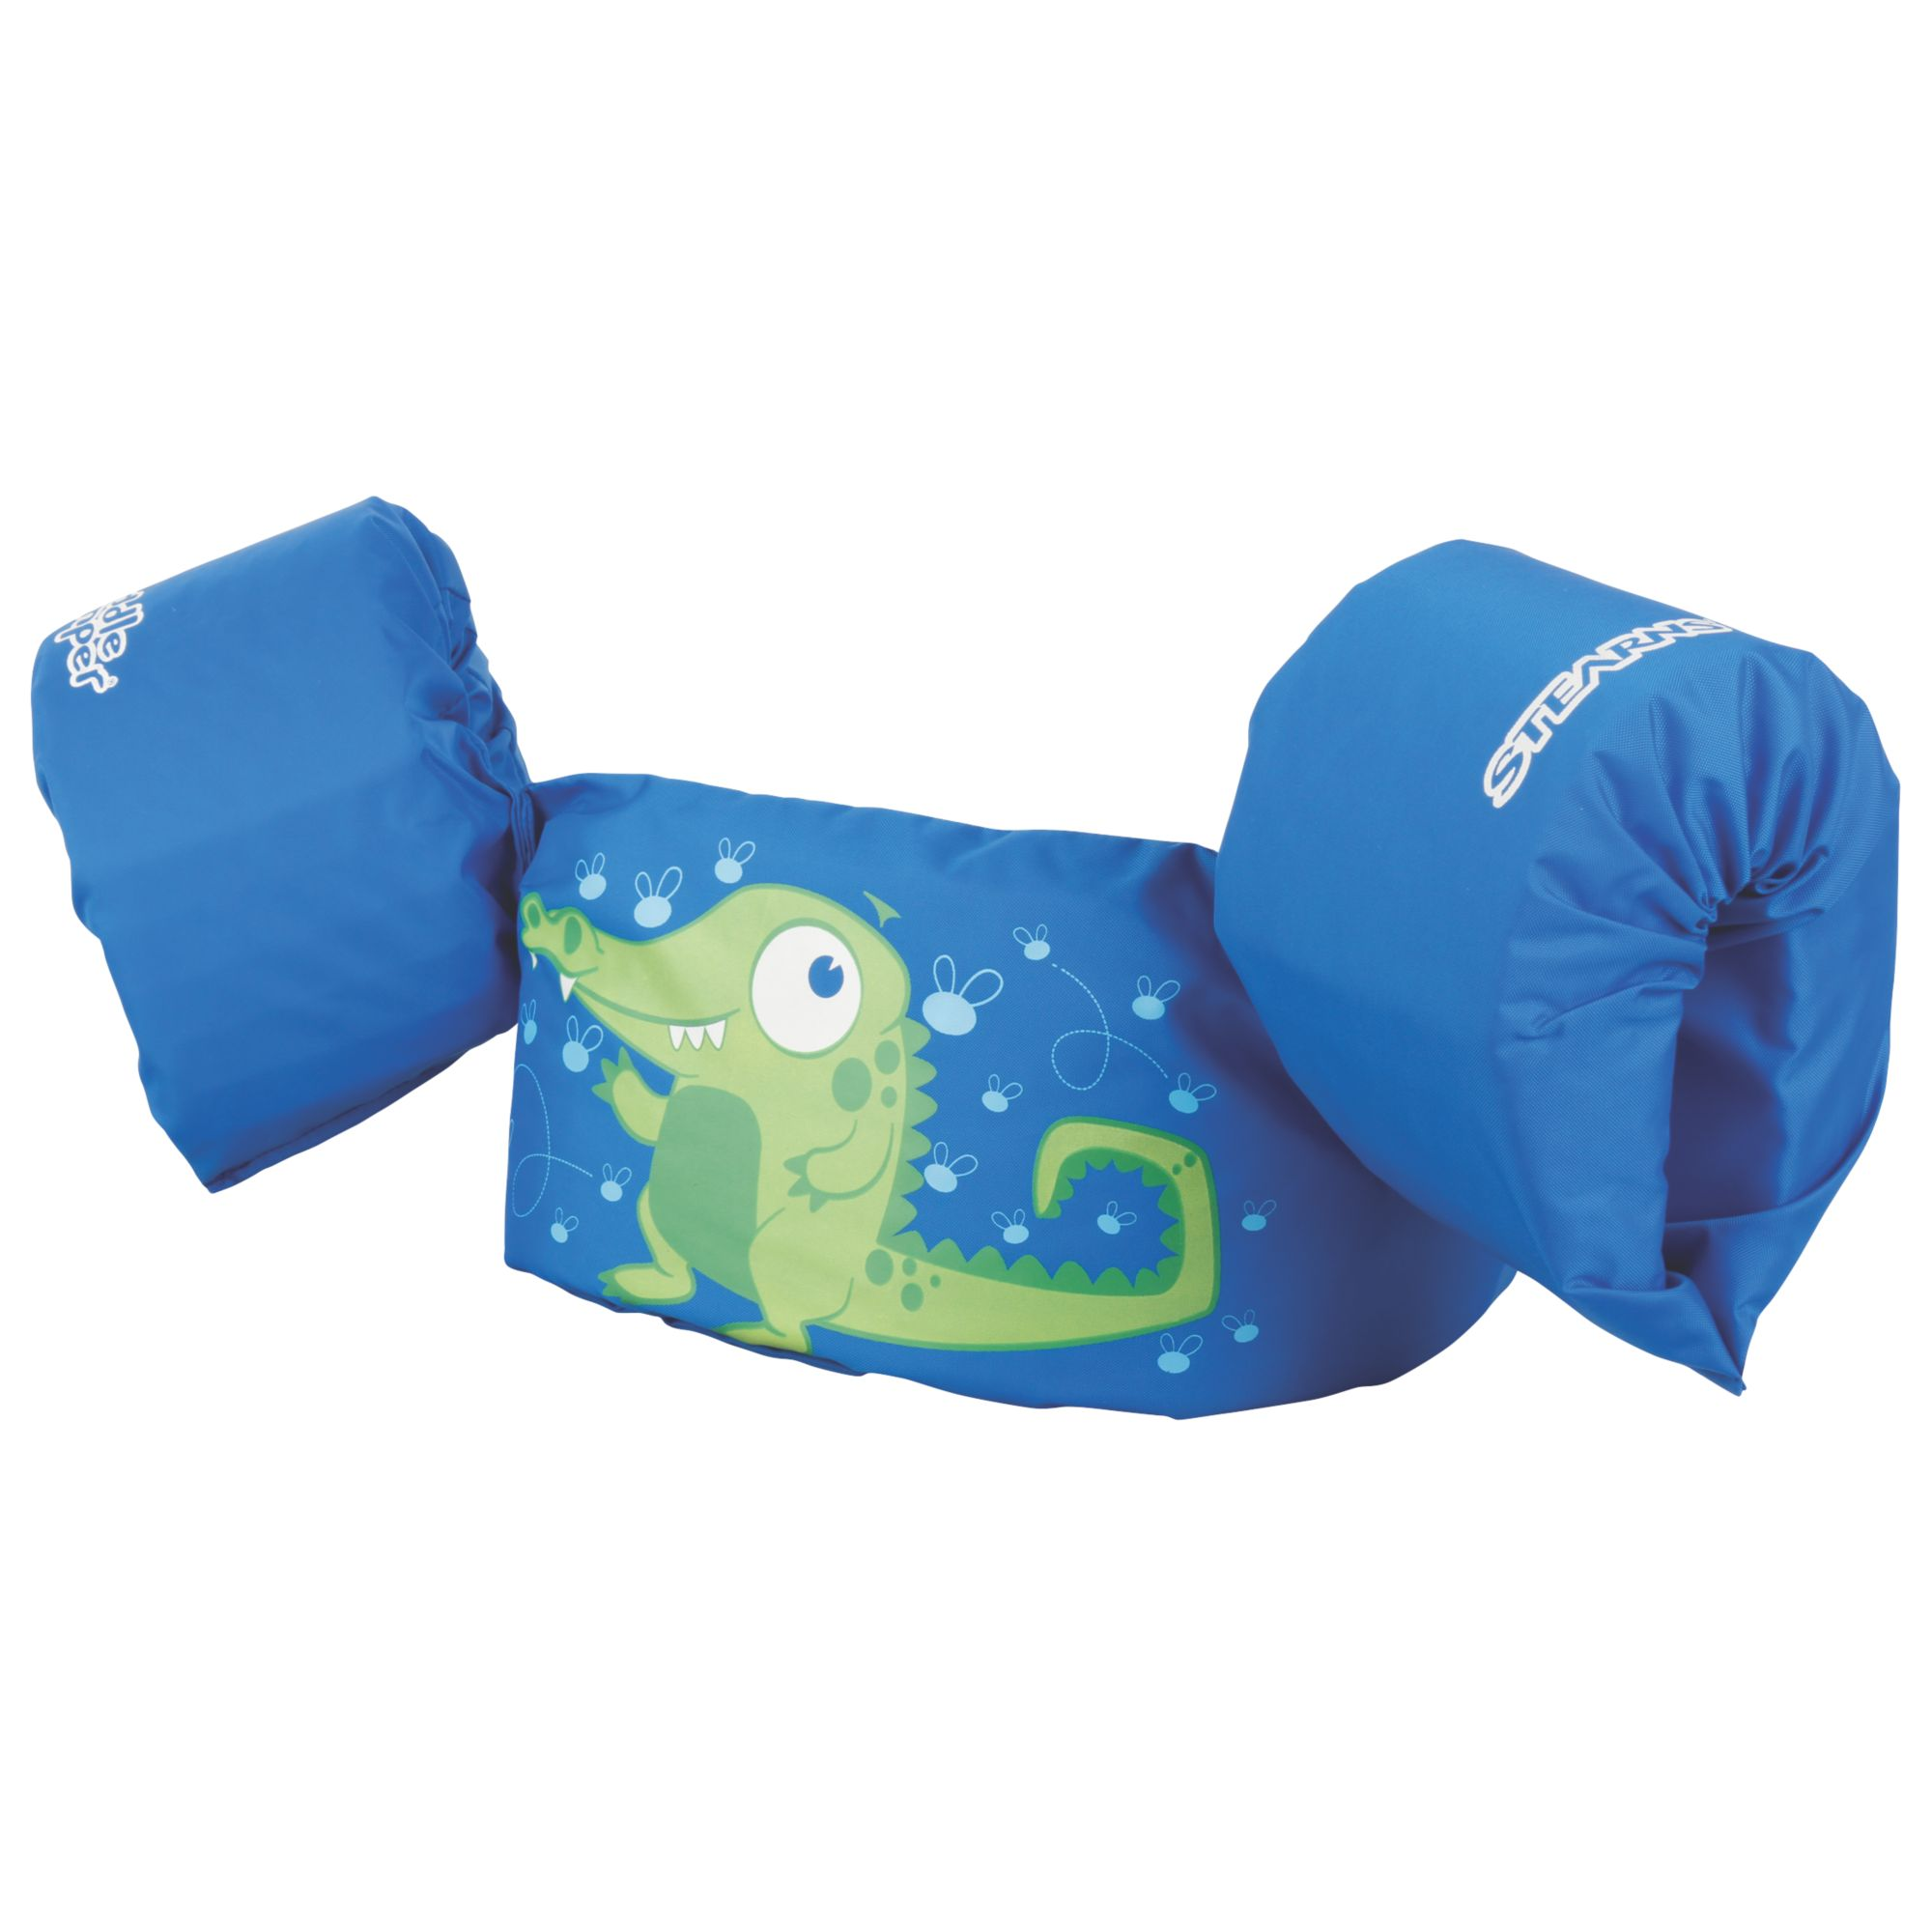 Puddle Jumper® Life Jacket - Gator